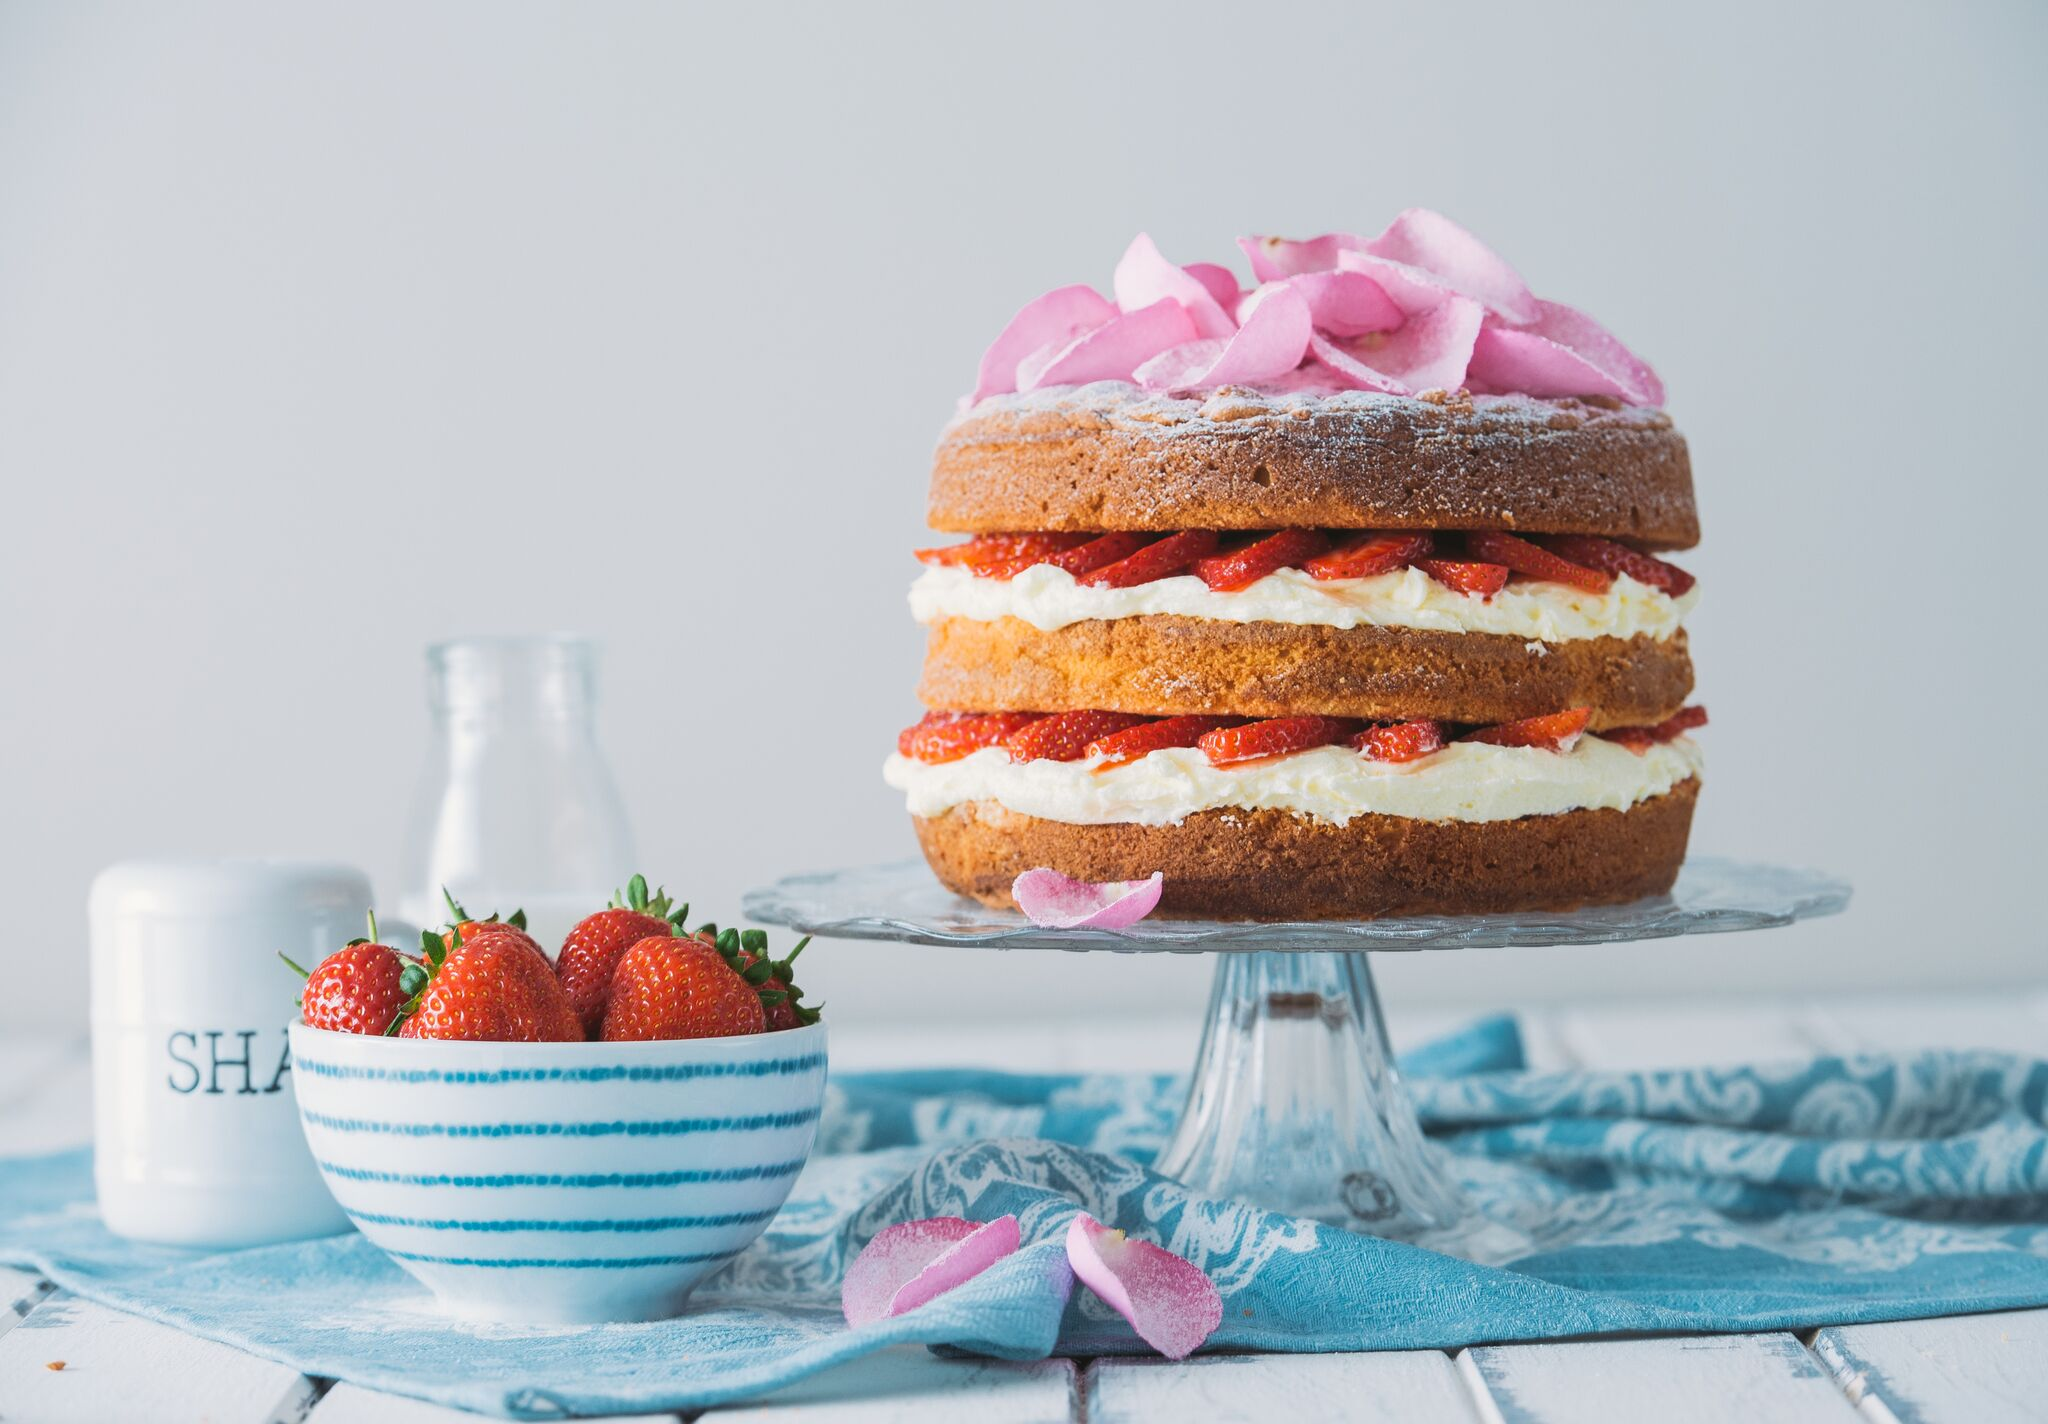 Victoria Sponge Cake with Sugared Rose Petals for The Great British Bake Off